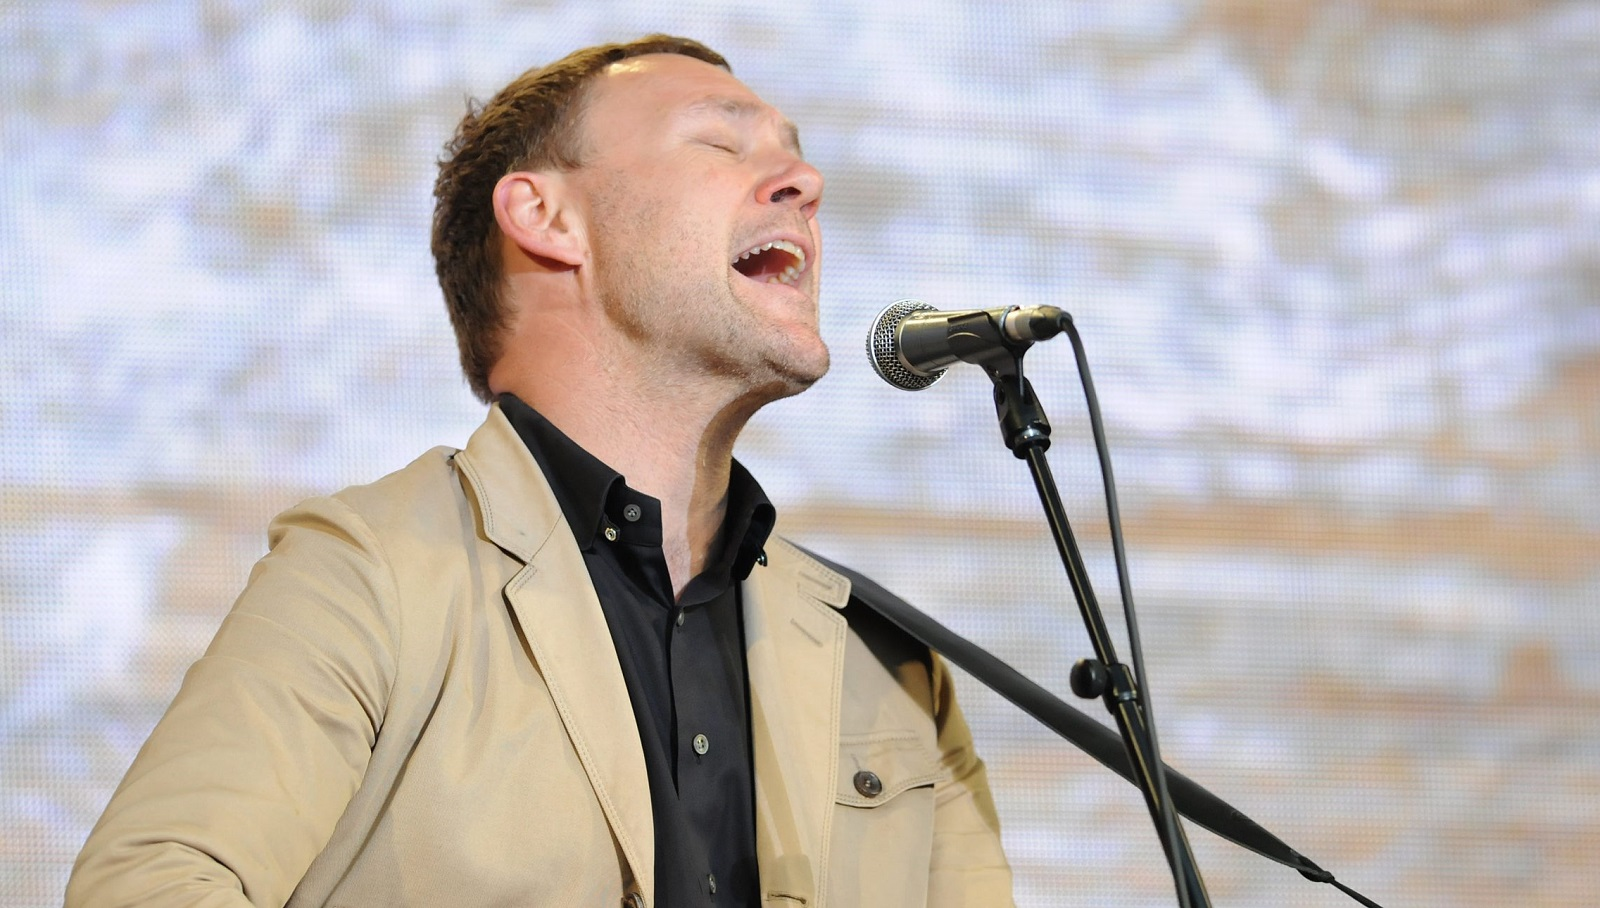 David Gray, pictured, performed on a bill with Amos Lee at Artpark on Saturday. (Getty Images)